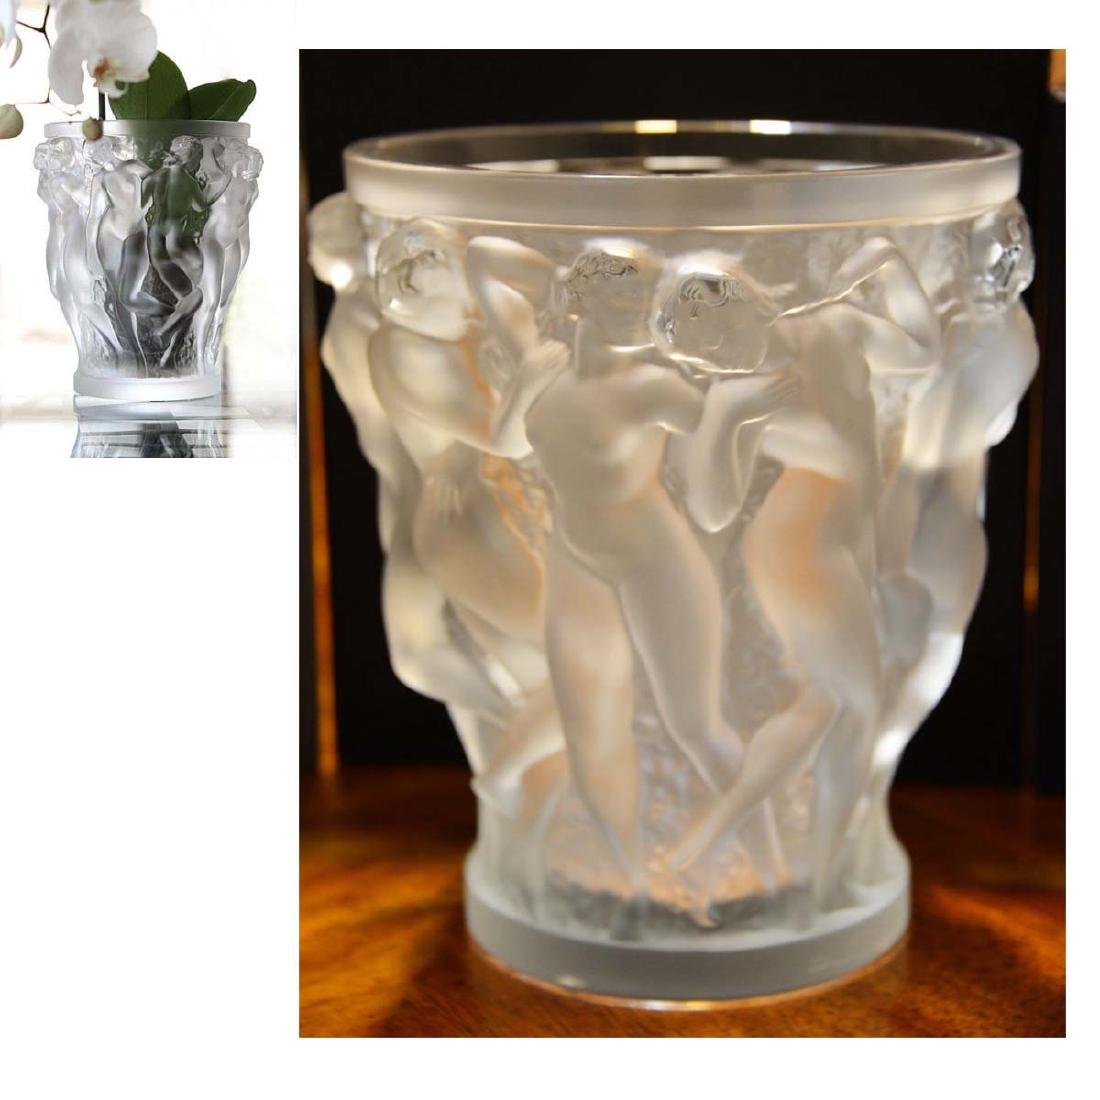 LALIQUE CRYSTAL BACCHANTES VASE DANCING FEMALE NUDES In